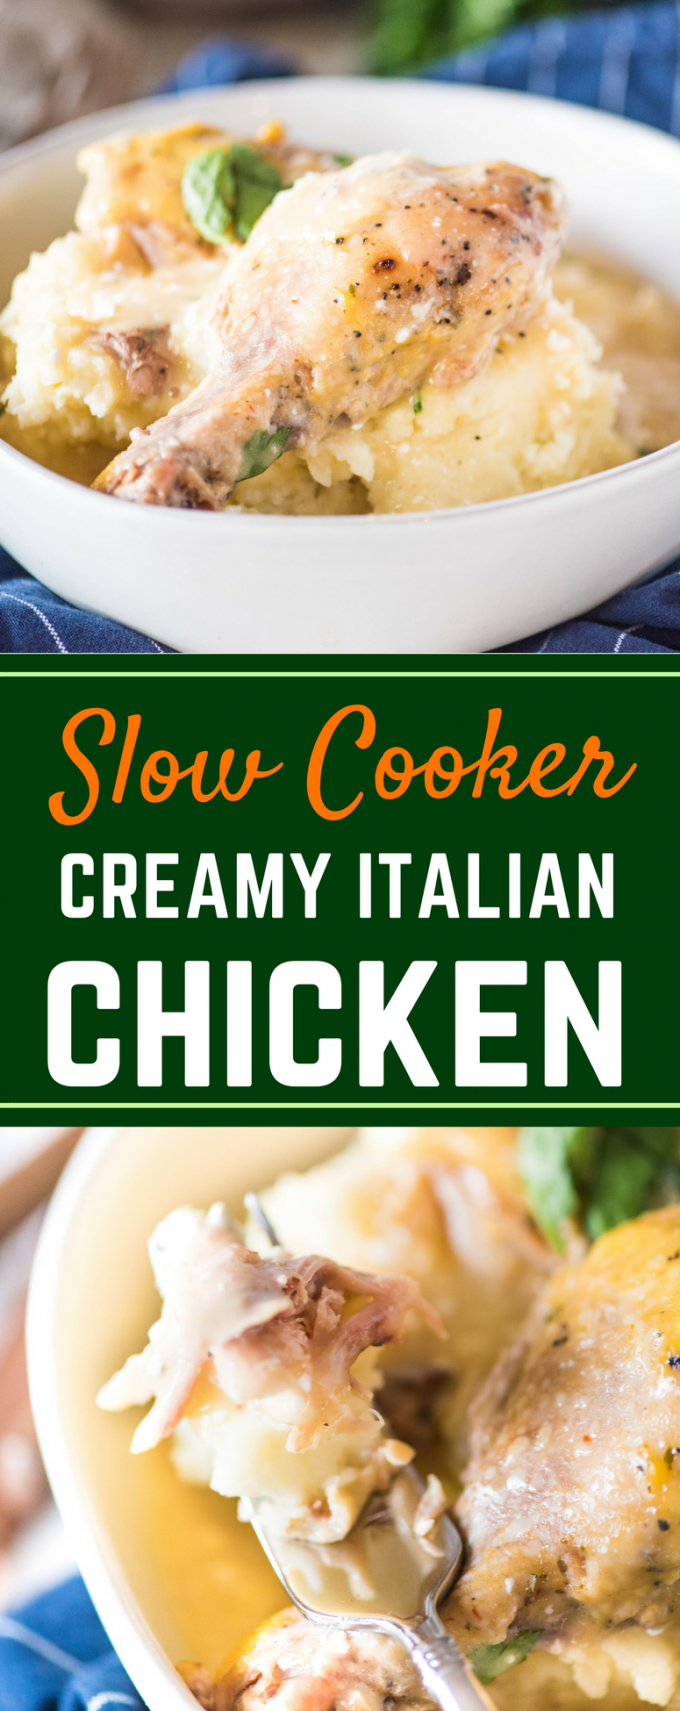 Whether cooked in the crockpot, Instant Pot, or baked, this easy Slow Cooker Creamy Italian Chicken is the ultimate comfort food! It's made deliciously creamy thanks to cream cheese, and tastes best served over rice or pasta. This is a dinner your family will request over and over! via @gogogogourmet